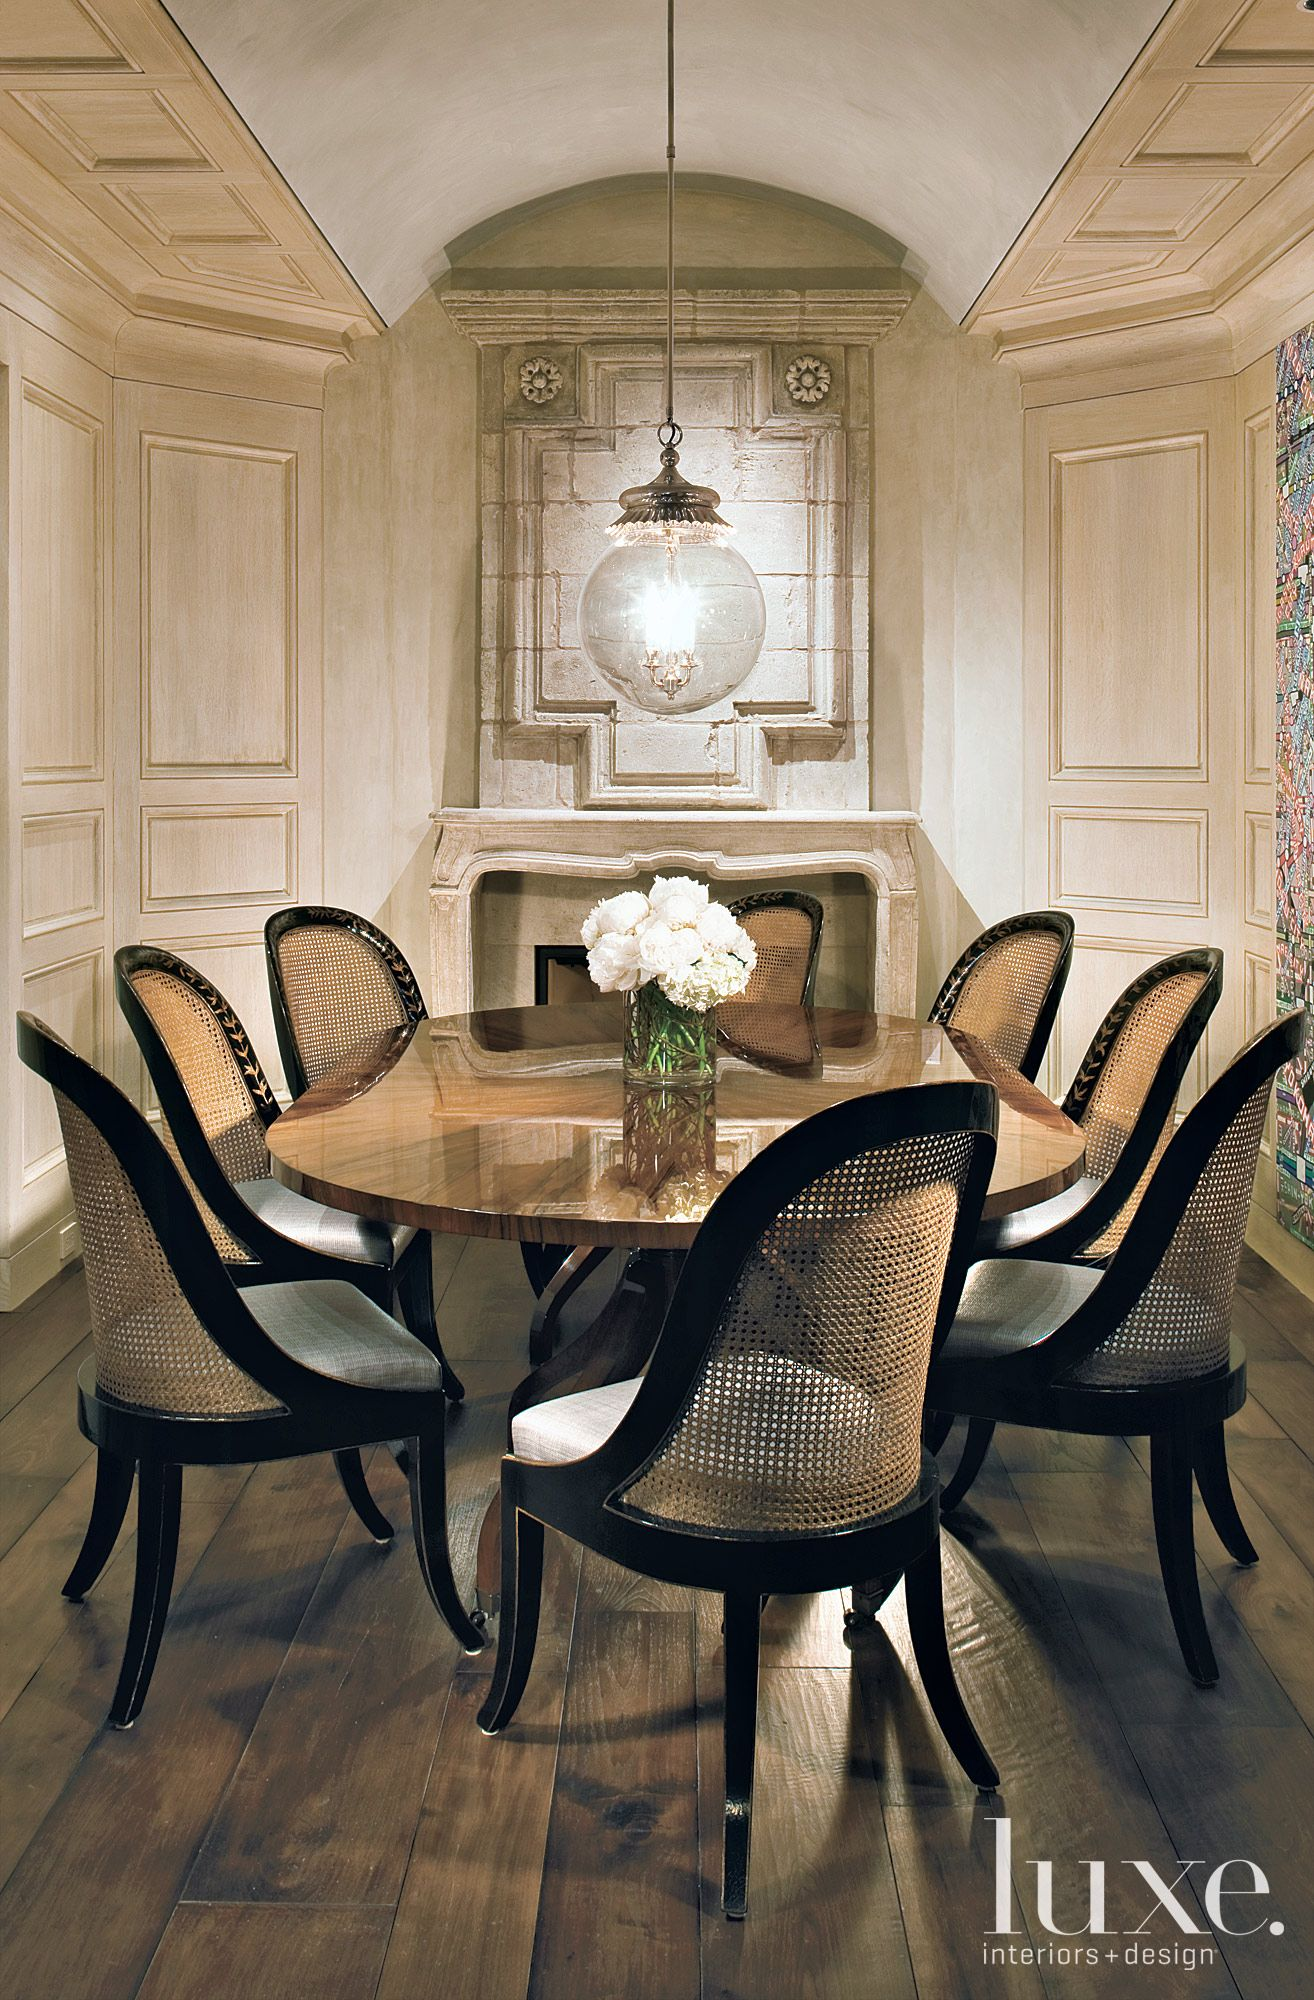 Excellent Stunning Dining Room Love The Architectural Details The Gmtry Best Dining Table And Chair Ideas Images Gmtryco